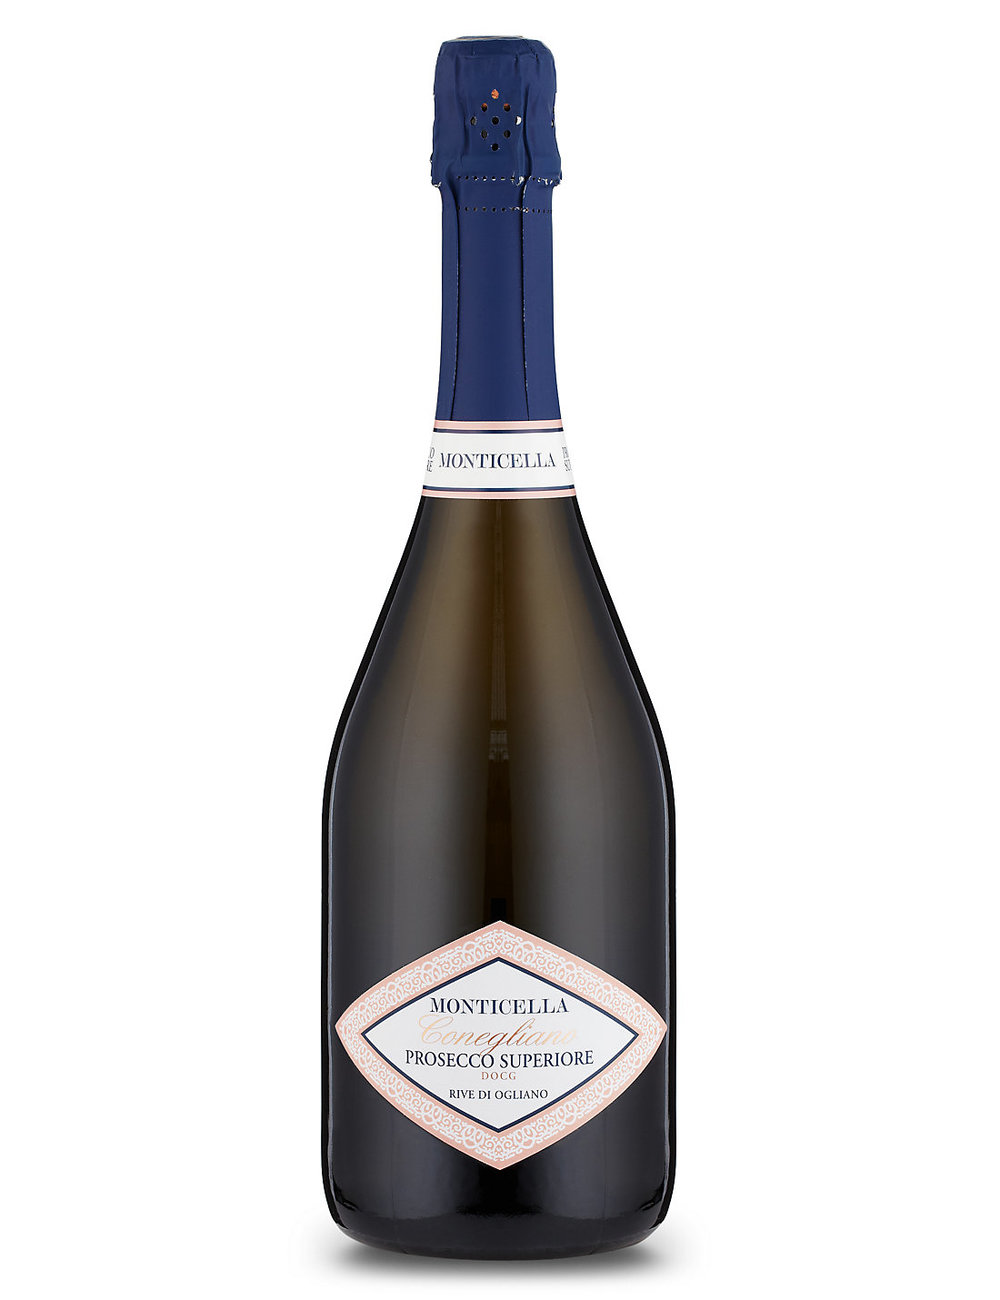 M&S Simply Food - At the higher end of the high street scale we have this Monticella Prosecco Superiore DOCG from M&S at £16.00 a bottle.